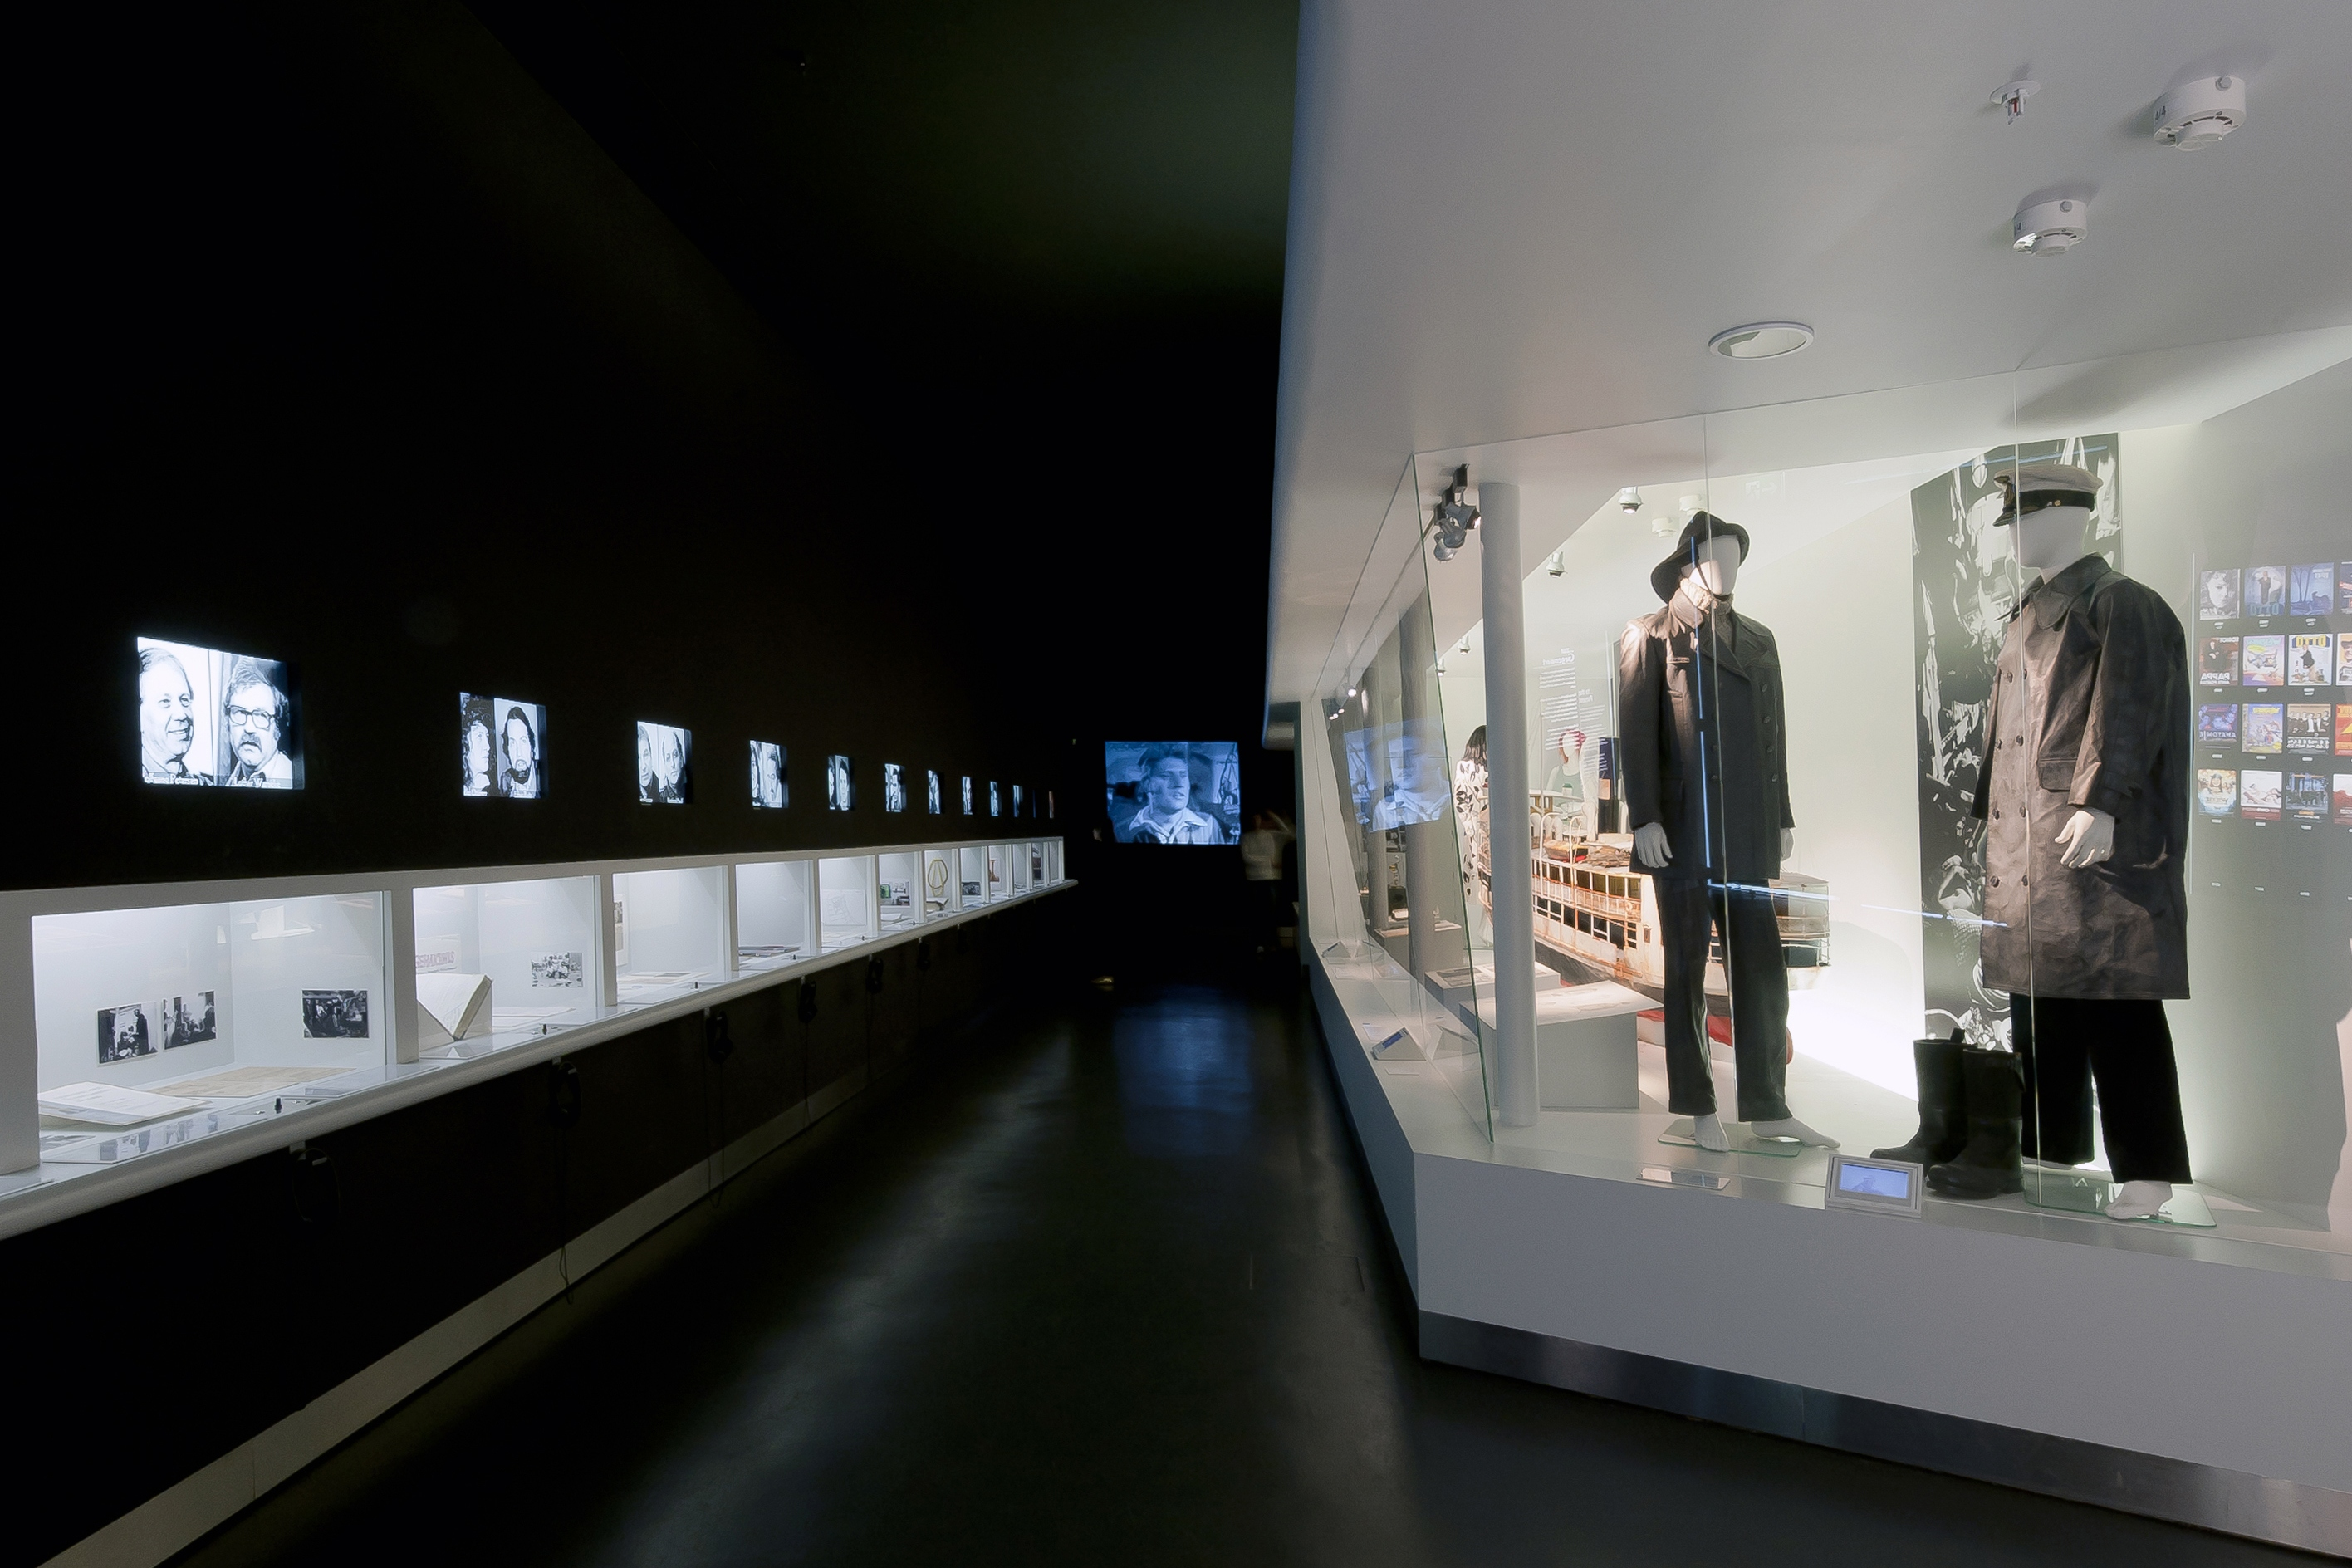 Part of the exhibition about the Present of film